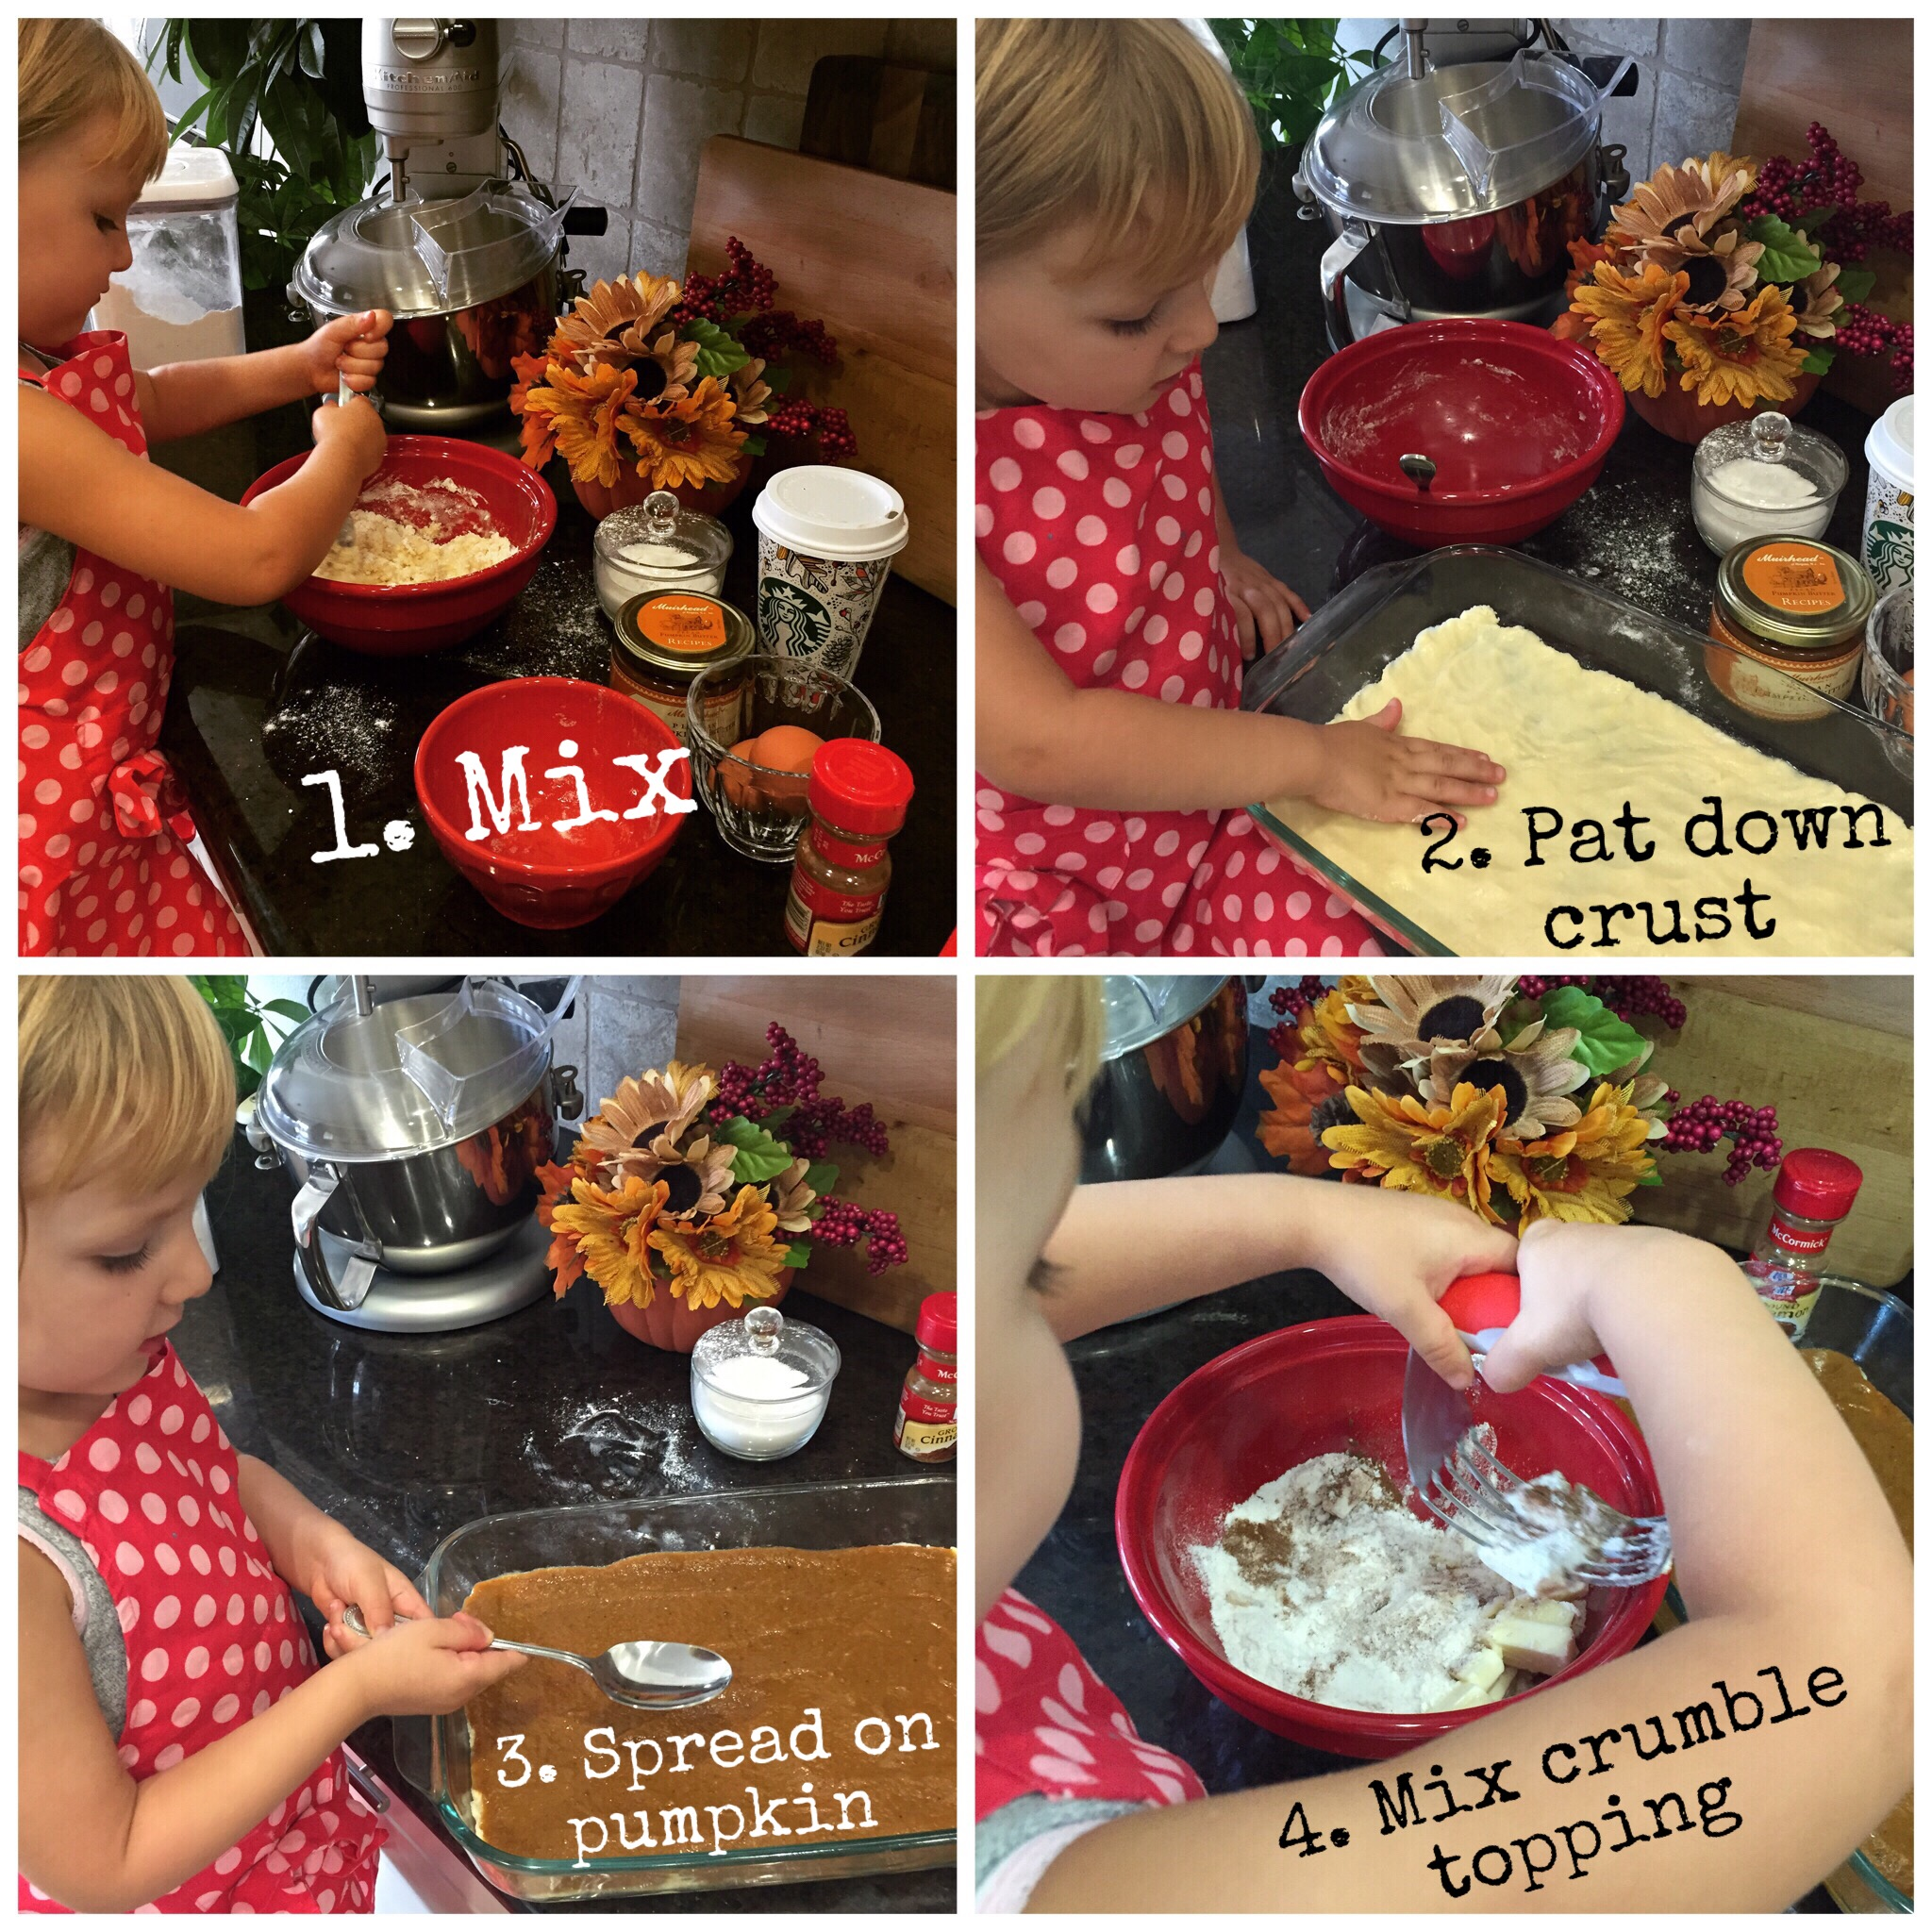 Baking with kids this Fall. Making William's Sonoma Pumpkin Bars- www.chefShayna.com